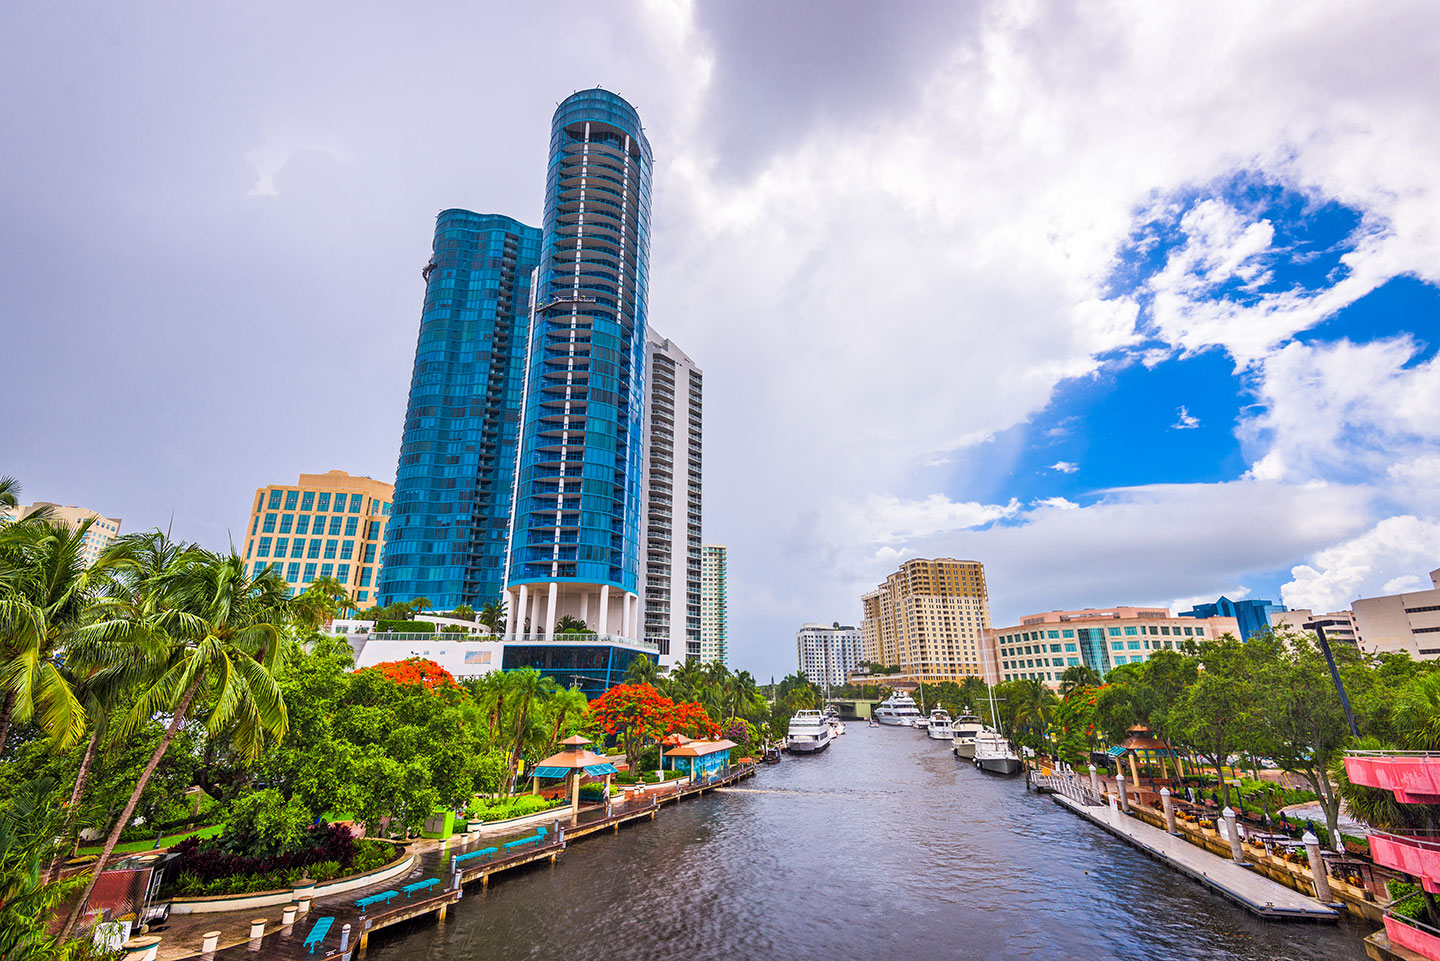 Destination Hotel Accommodations Fort Lauderdale Waterway